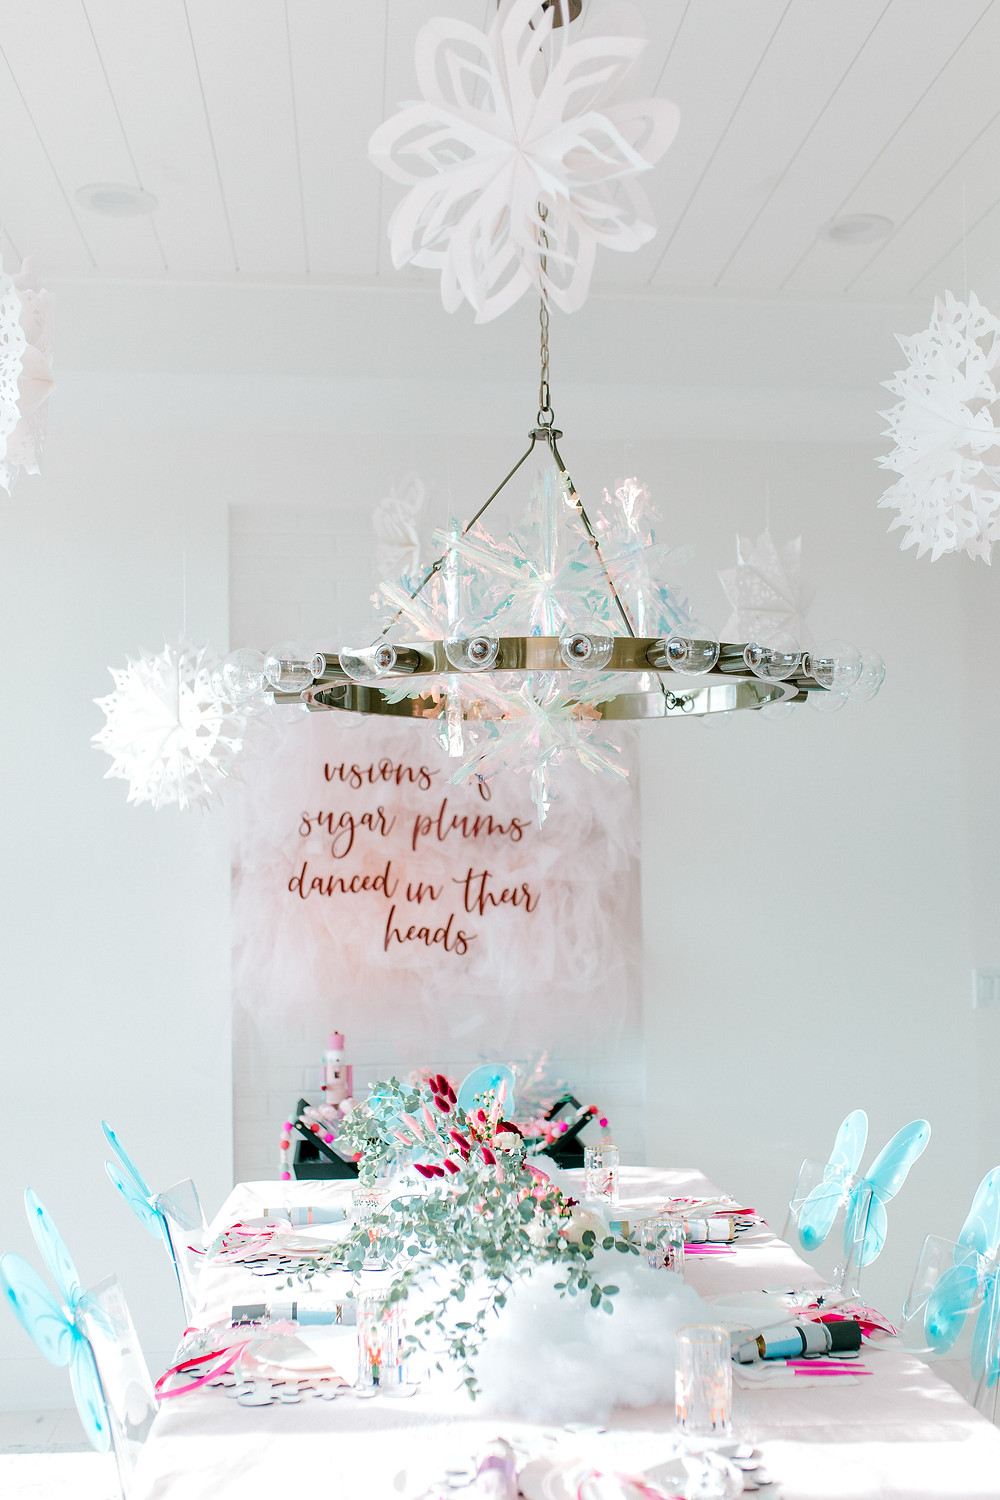 A nutcracker sugar plum birthday party with hanging paper and clear snowflakes and blue butterfly wings with floral centrepieces.